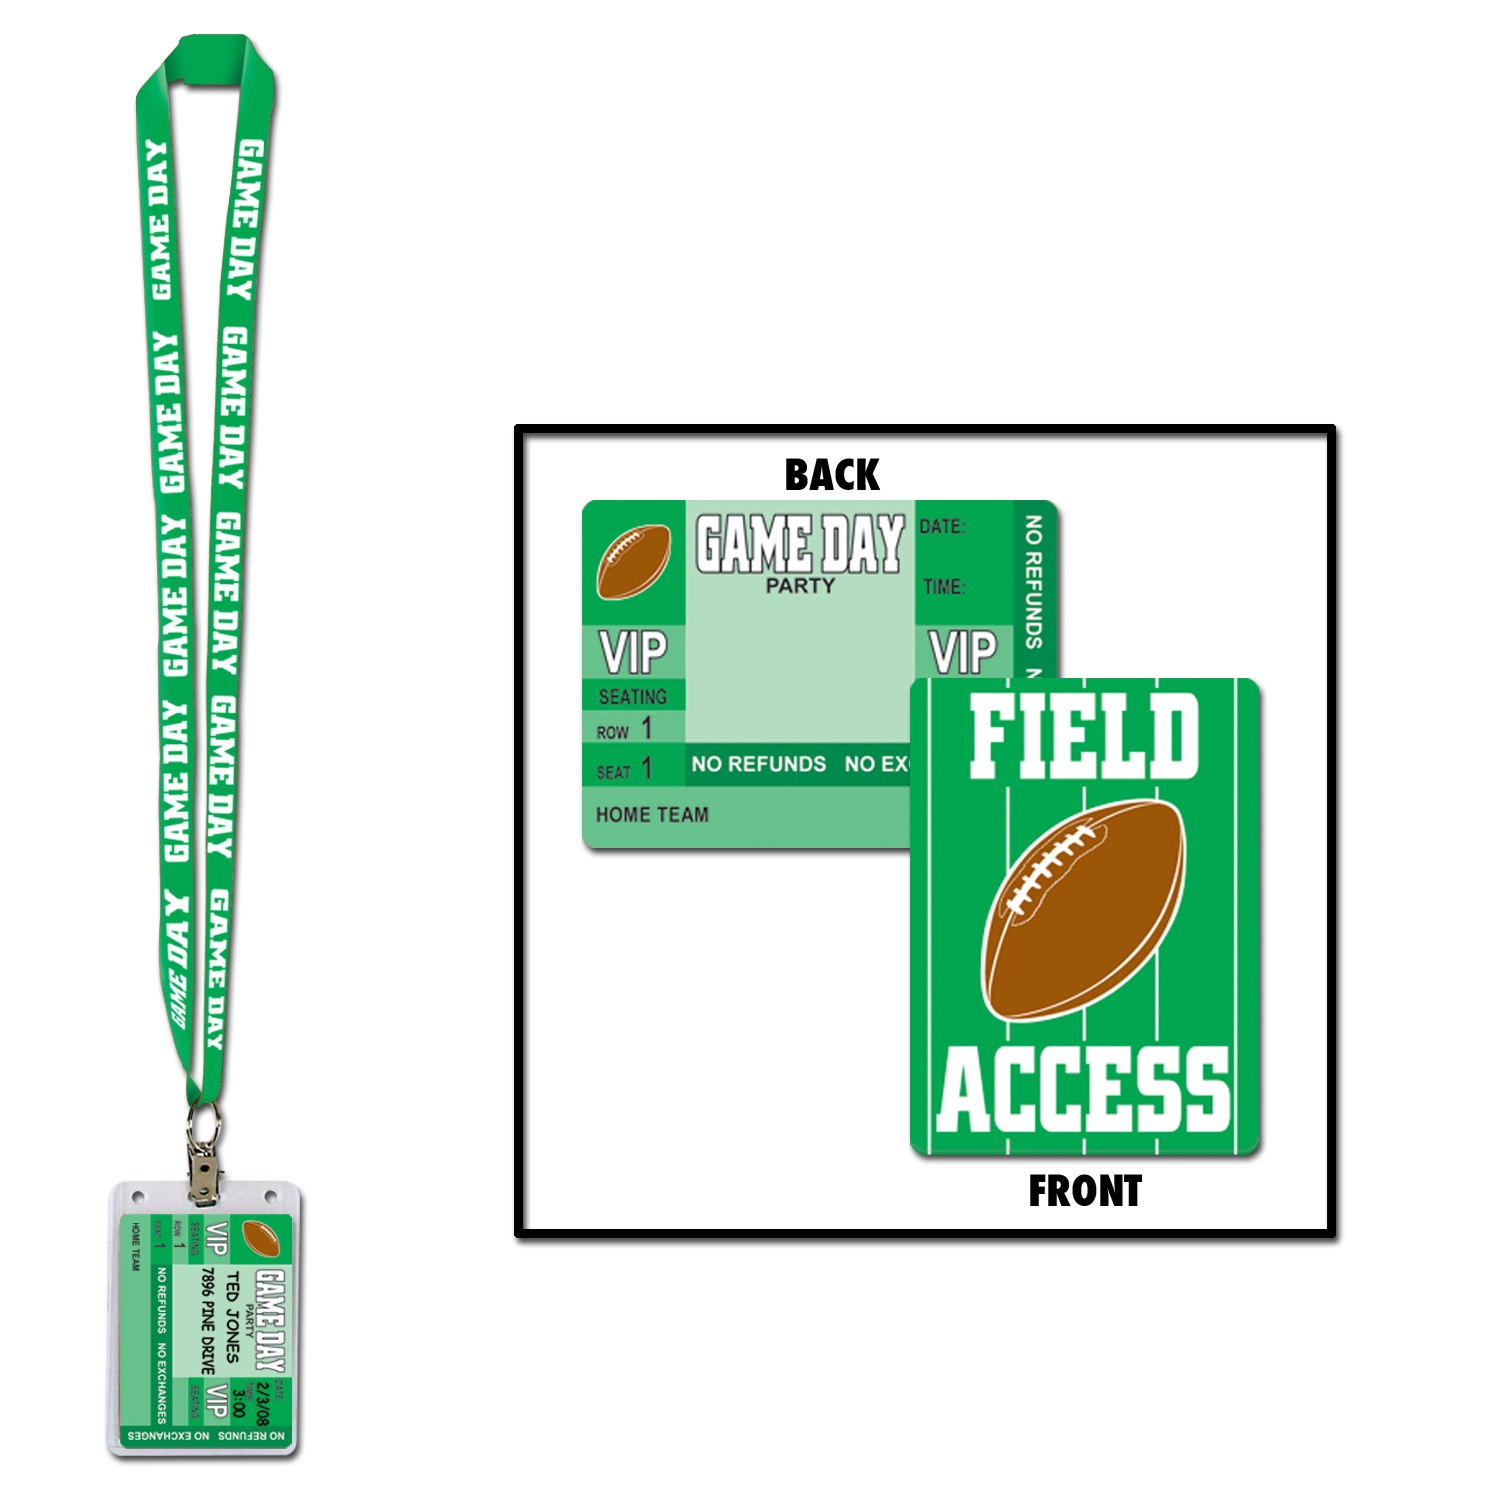 green game day lanyard with a field access pass at the bottom